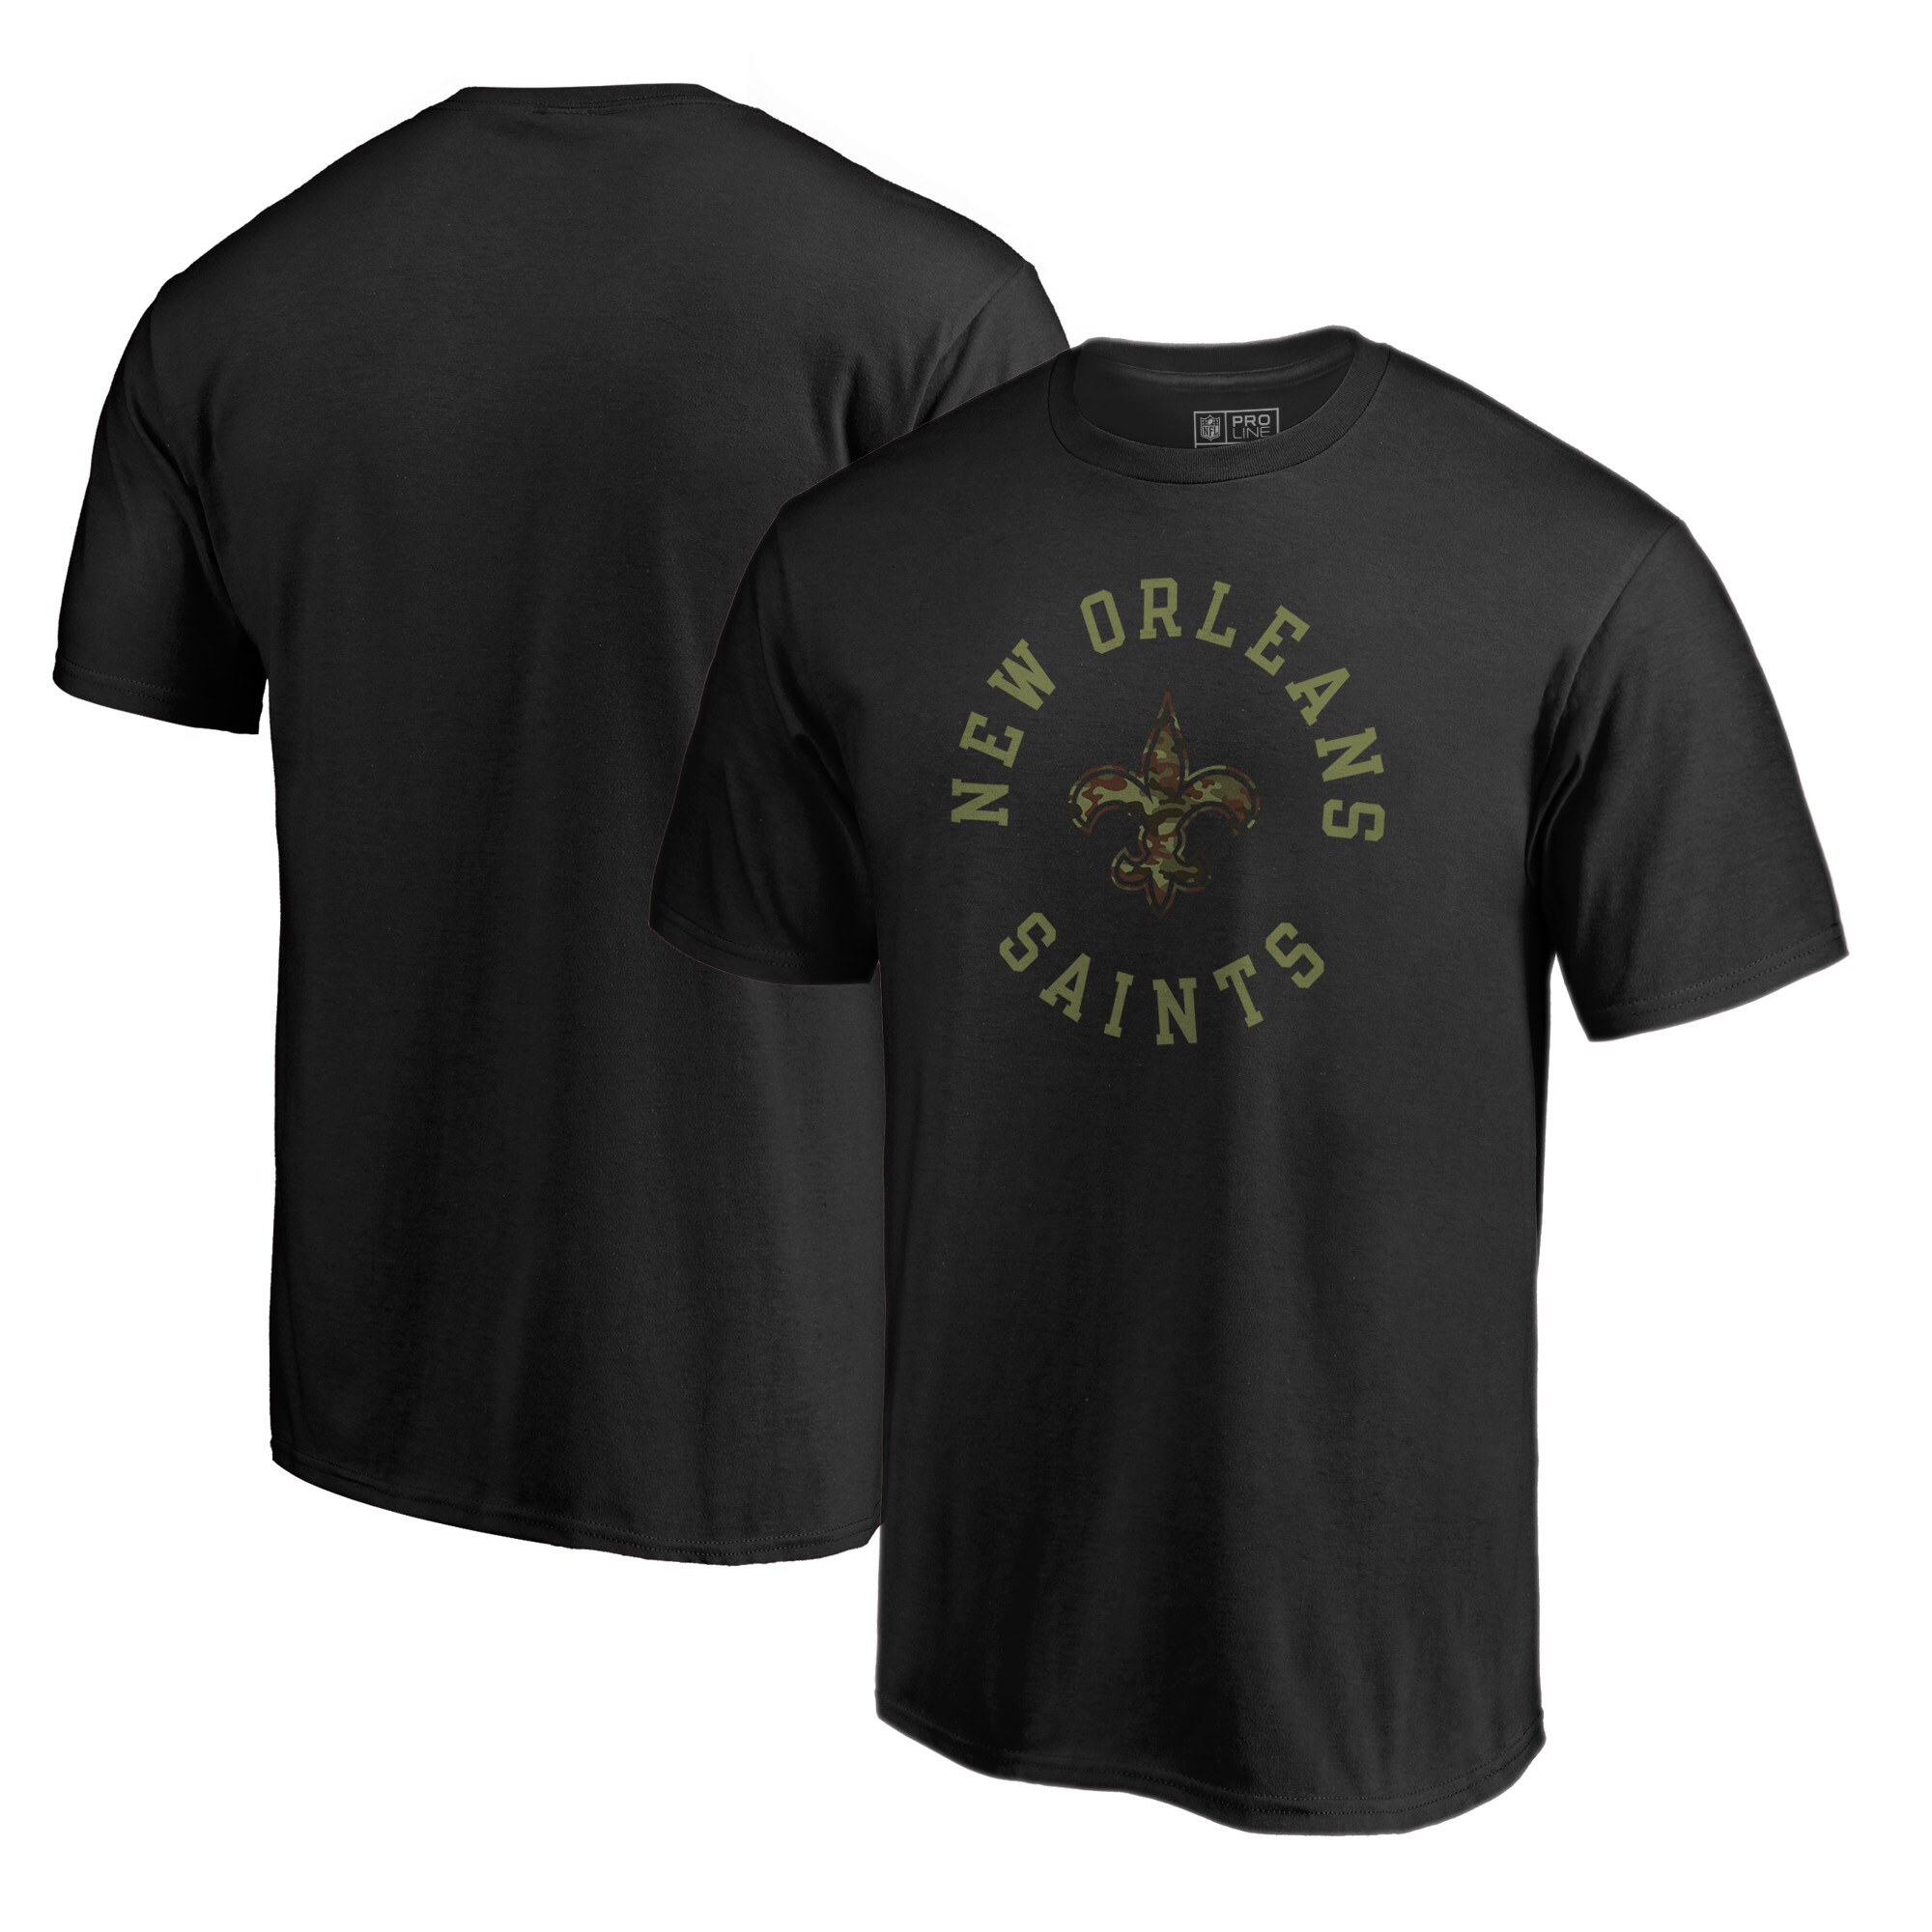 New Orleans Saints NFL Pro Line by Fanatics Branded Camo Collection Liberty Big & Tall T-Shirt - Black